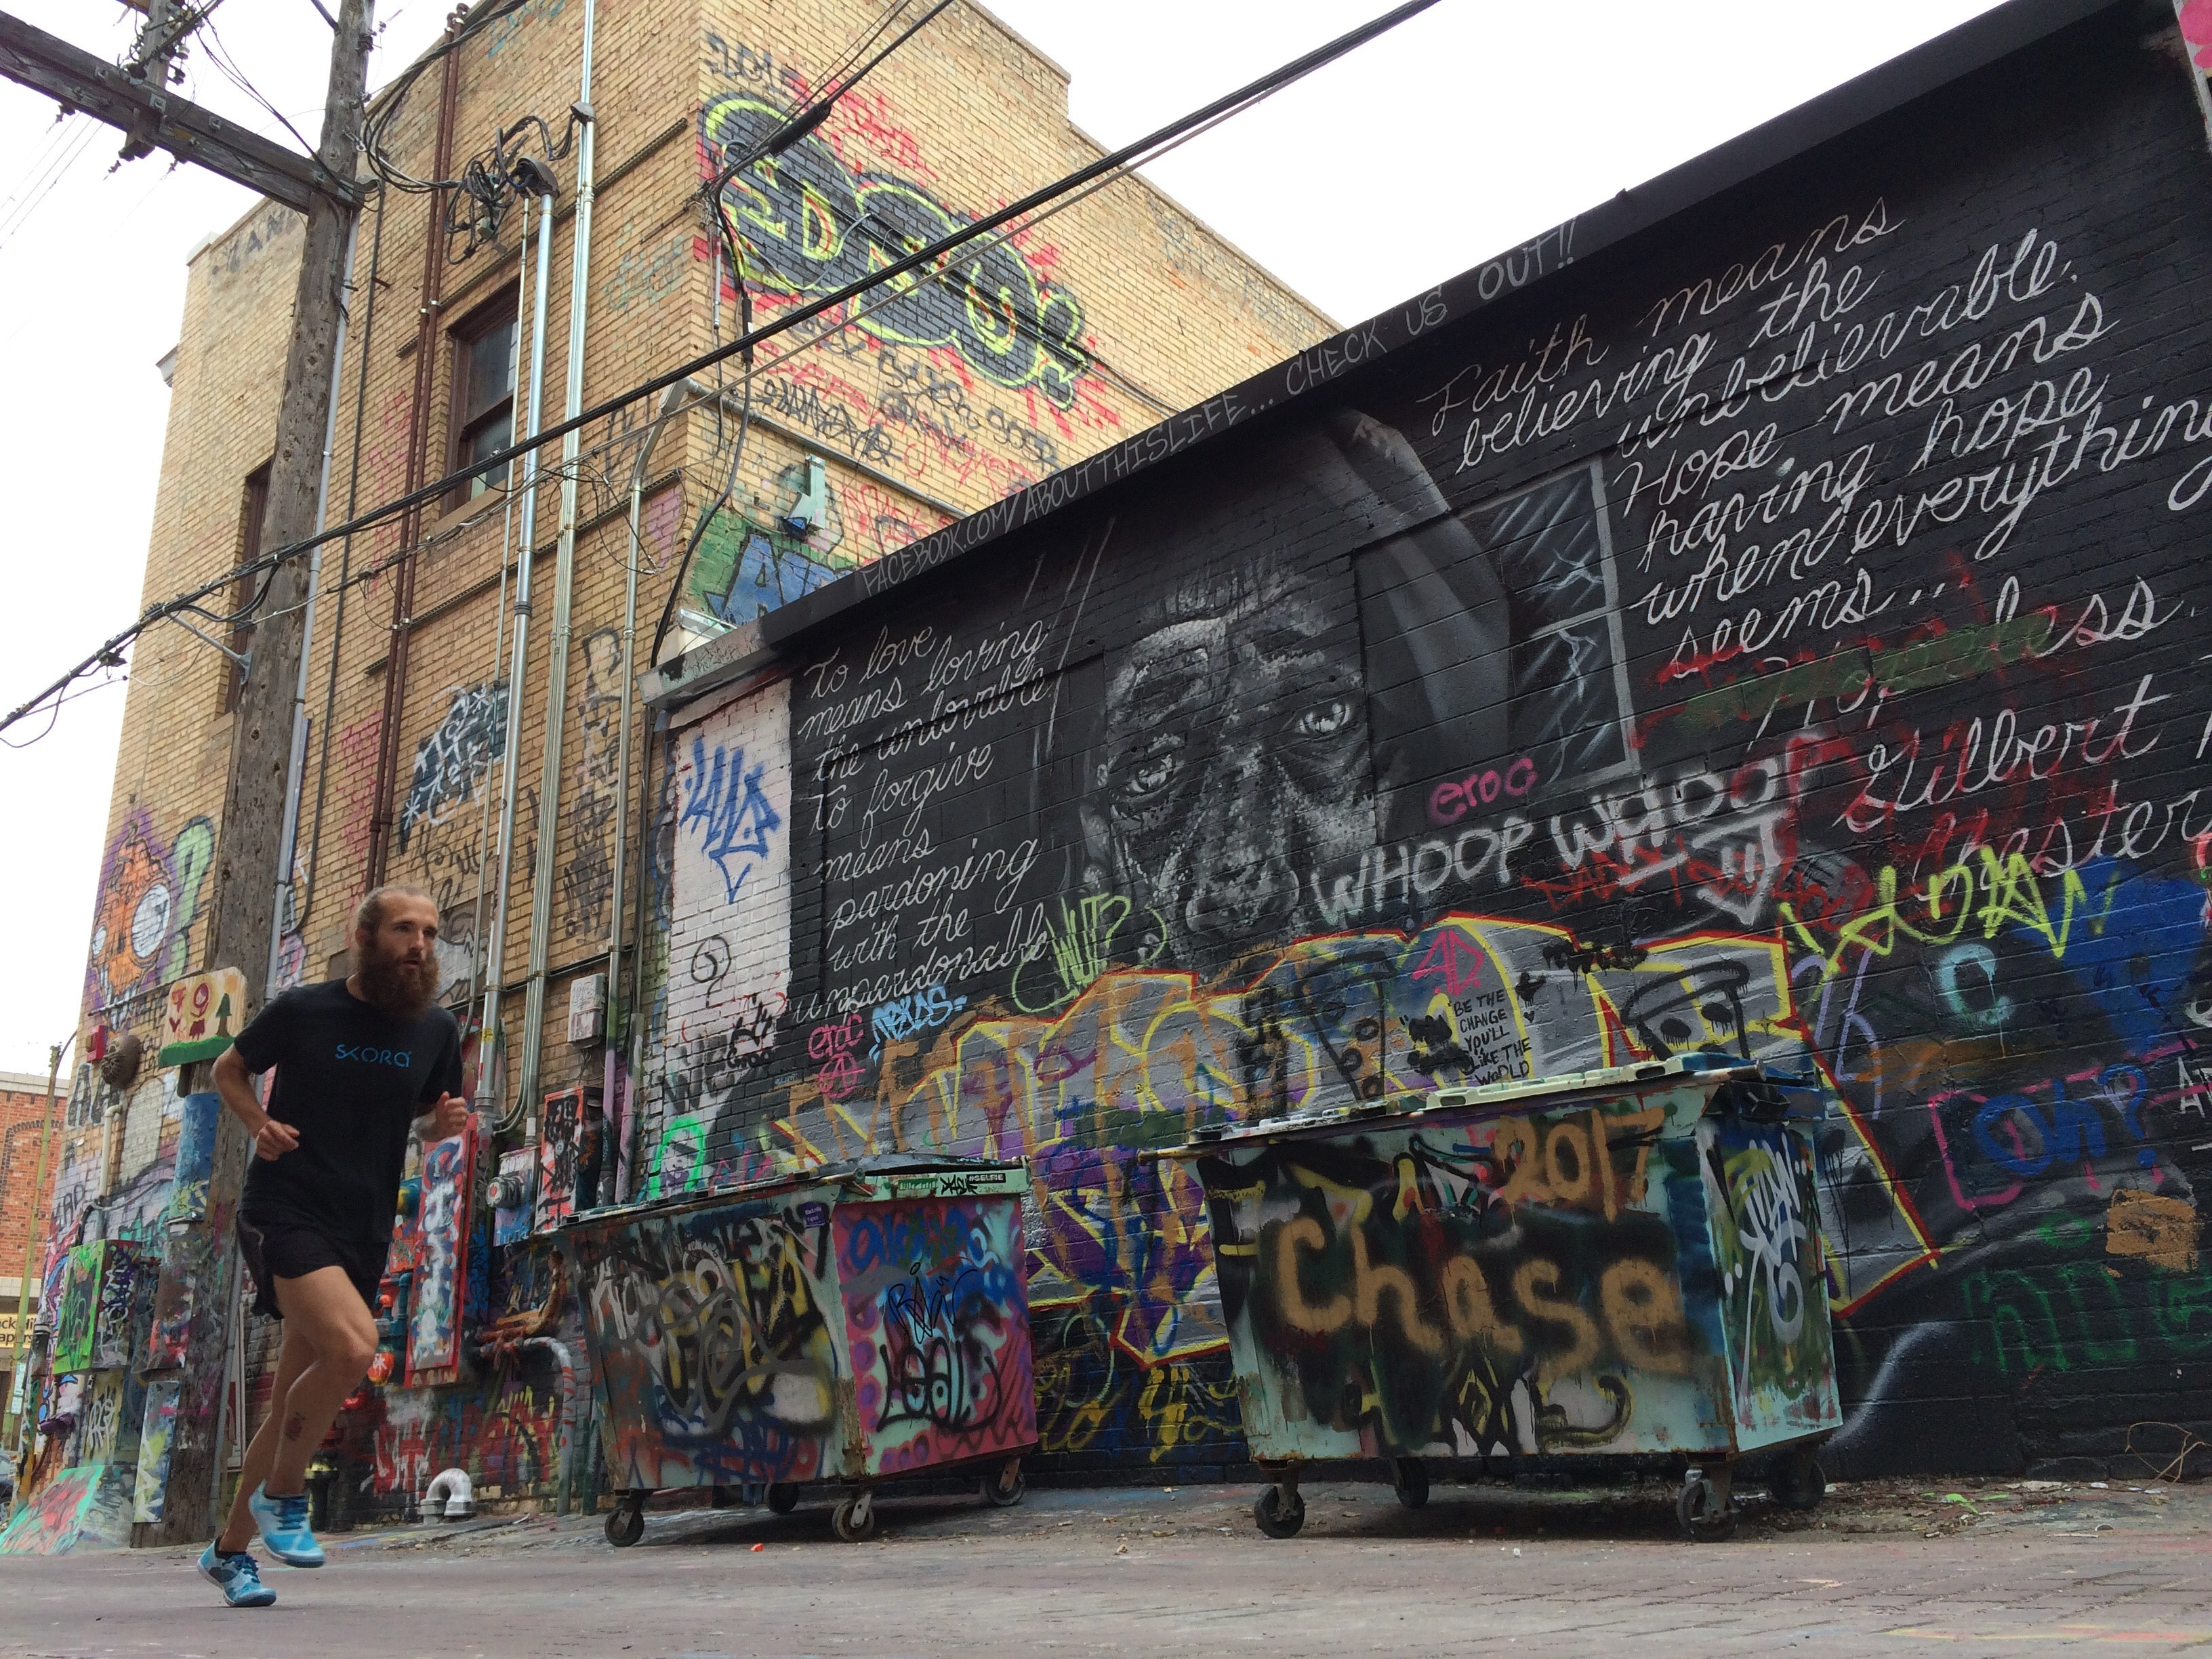 Man with beard running in front of dumpsters and building covered in graffiti